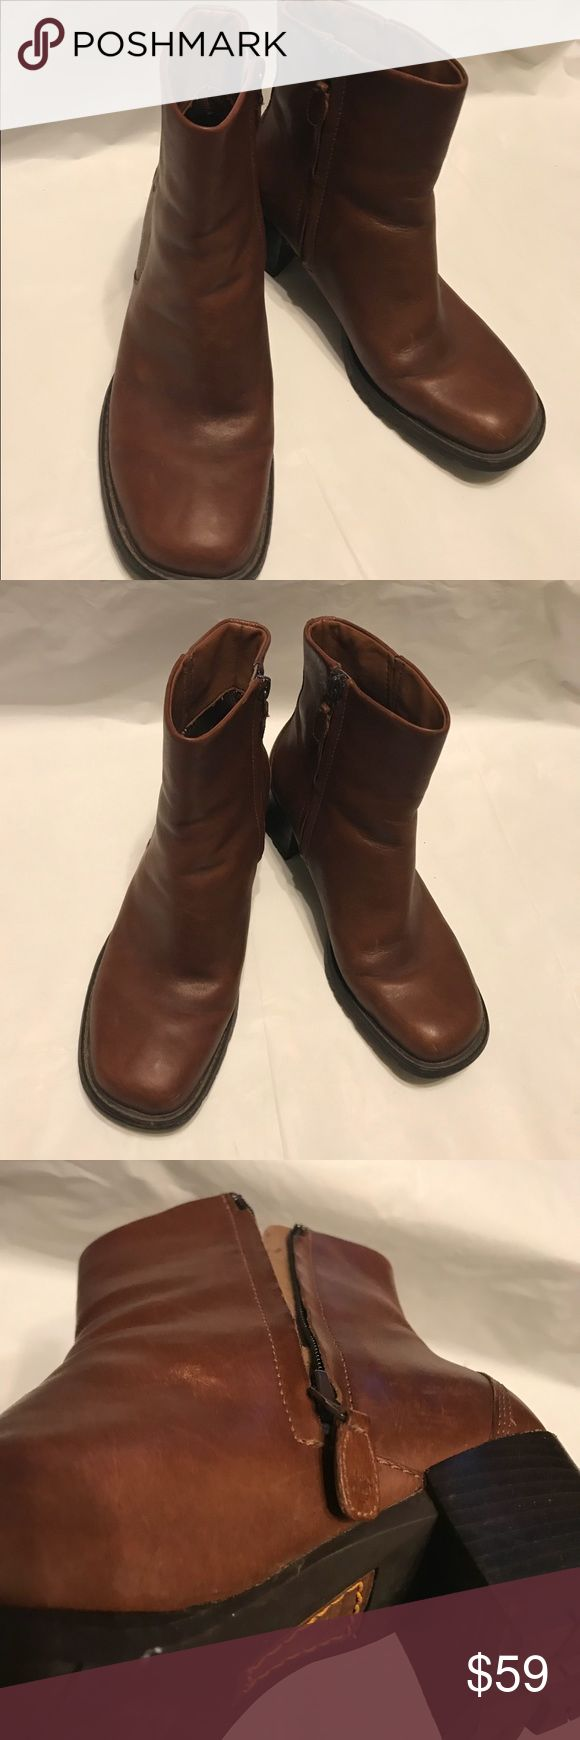 Ladies Timberlands ankle leather brown boots 7.5 Ladies Timberlands ankle leather brown boots size 7.5 Great used condition with minimal wear   Please check out my closet for lots of other great pieces many different styles and sizes  Bundle multiple pieces for private discount  Shipped out within 24hrs after receiving payment  Monday through Friday not including Holidays  Thank you 🛍 Timberland Shoes Ankle Boots & Booties